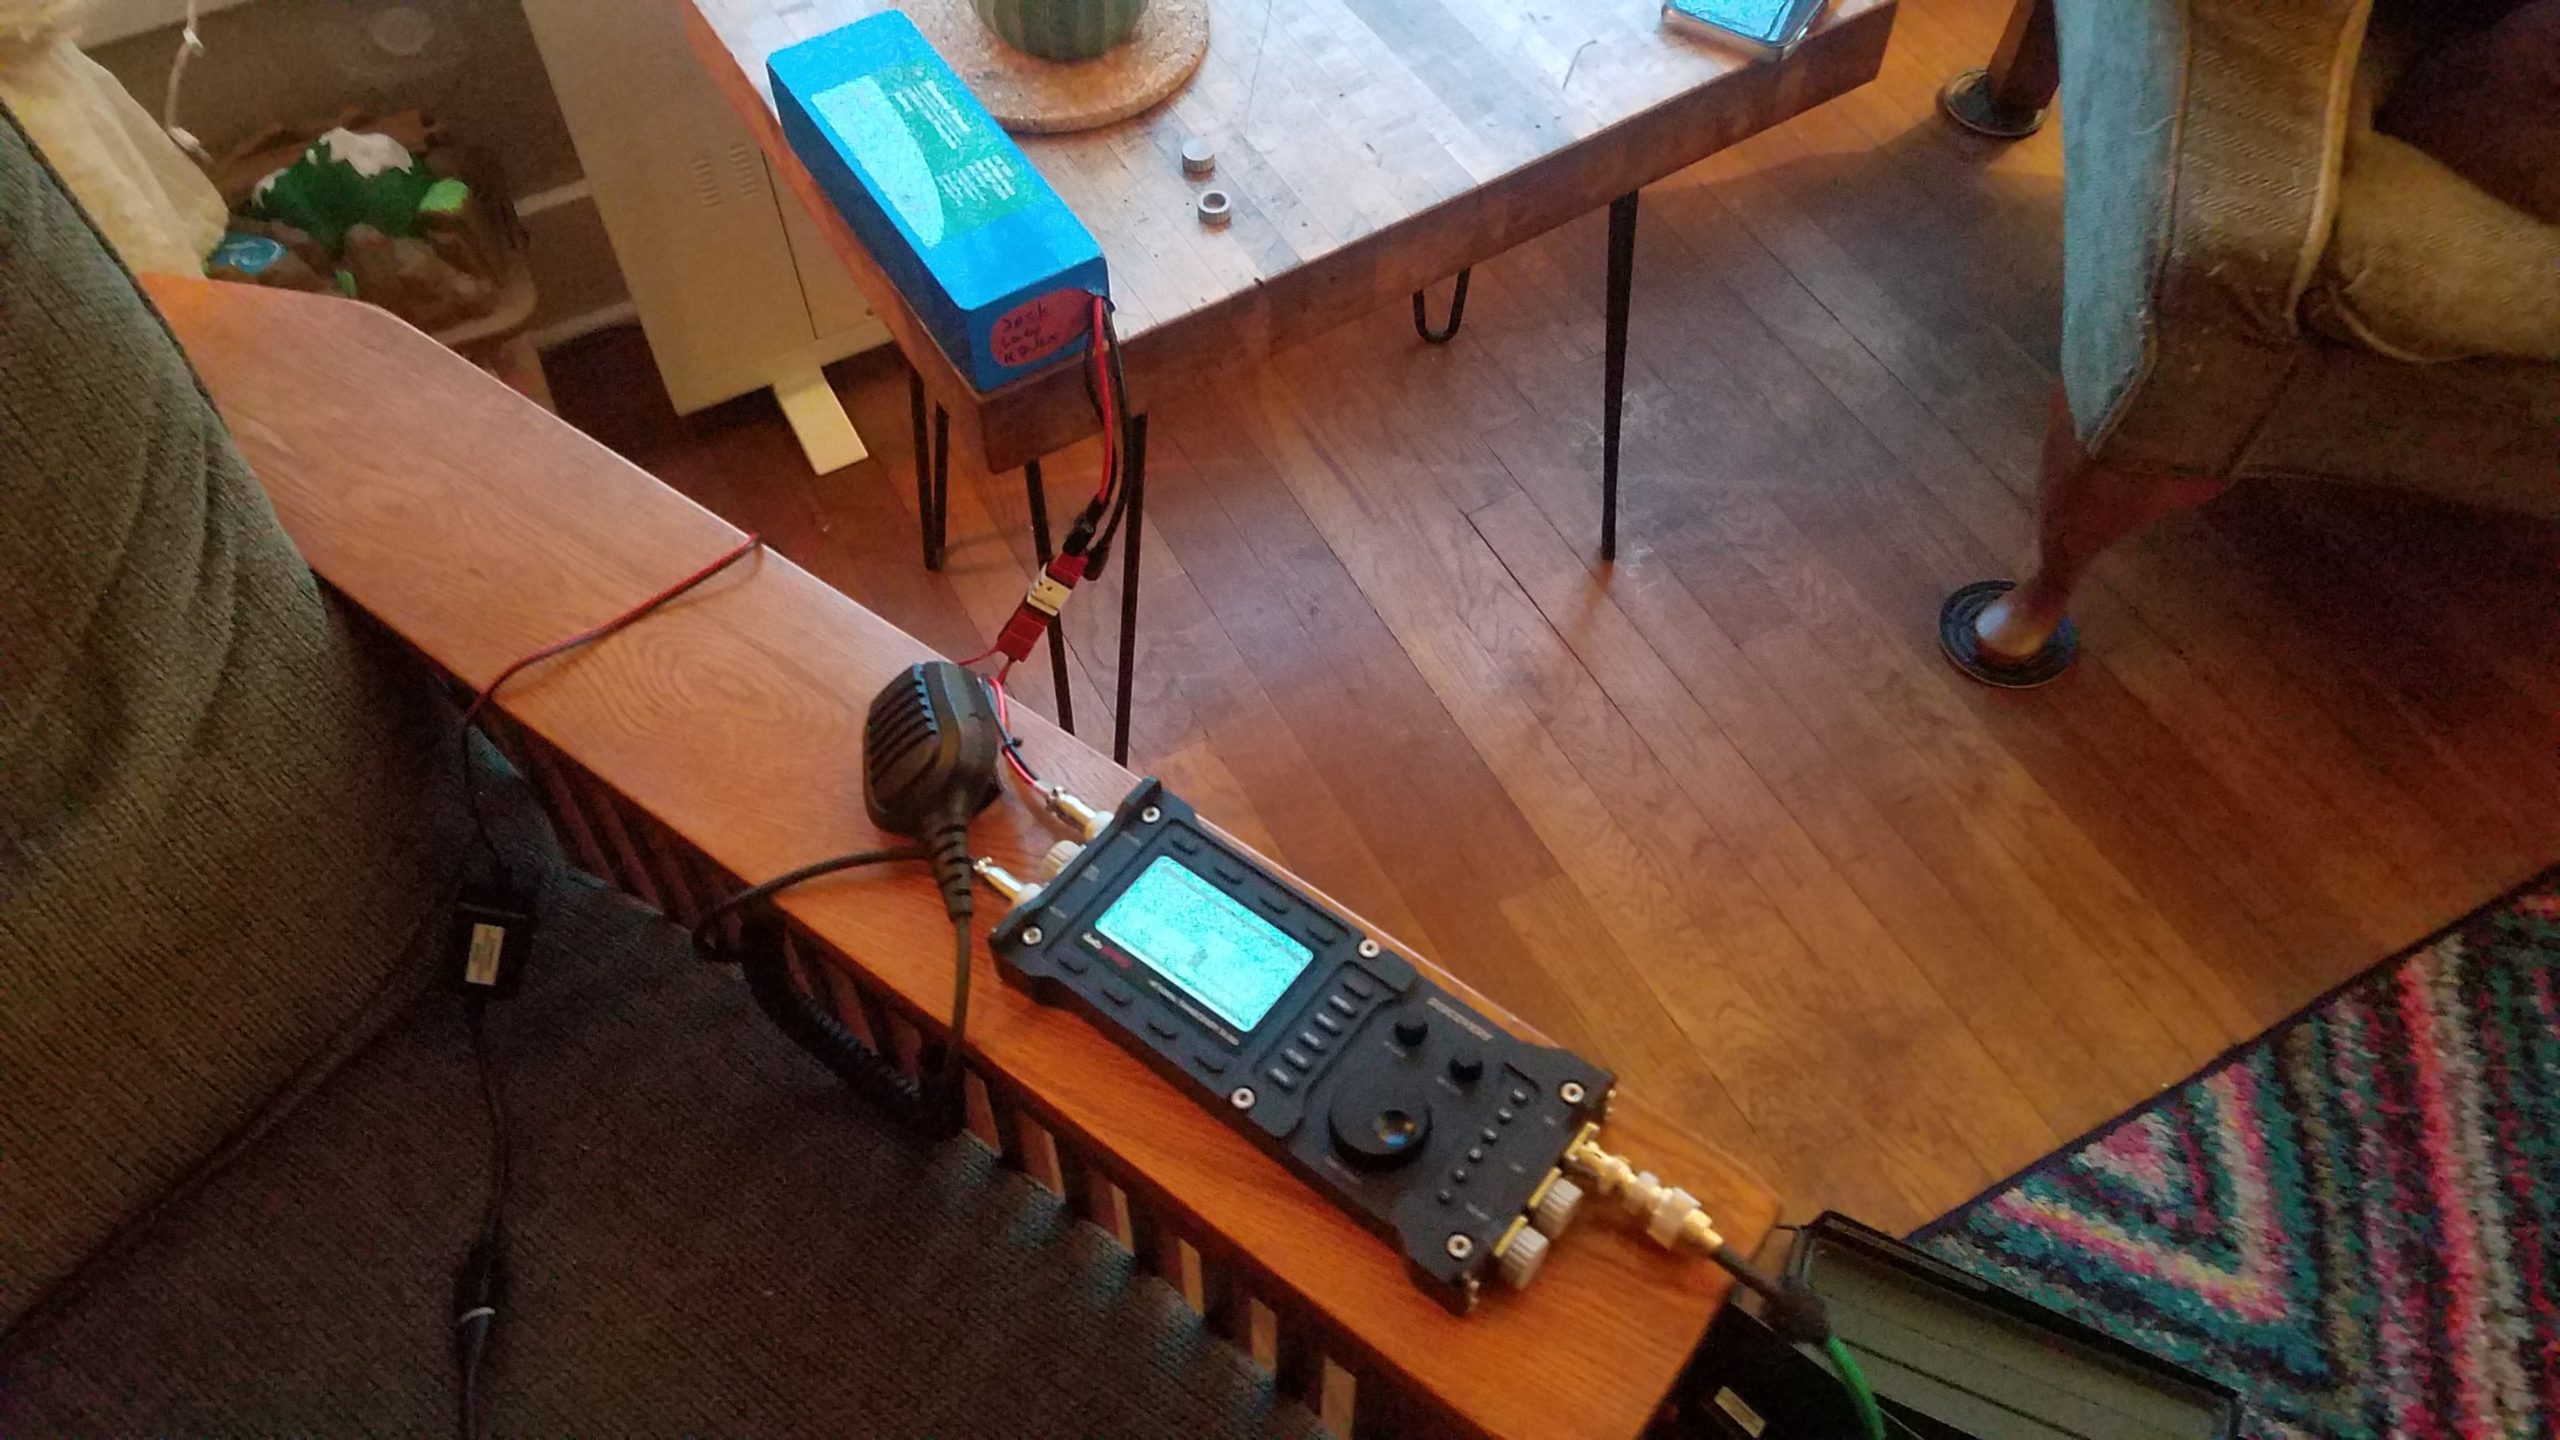 Zoomed out view of a radio sitting on a chair arm connected to a 12v battery and a 12v USB phone charger.